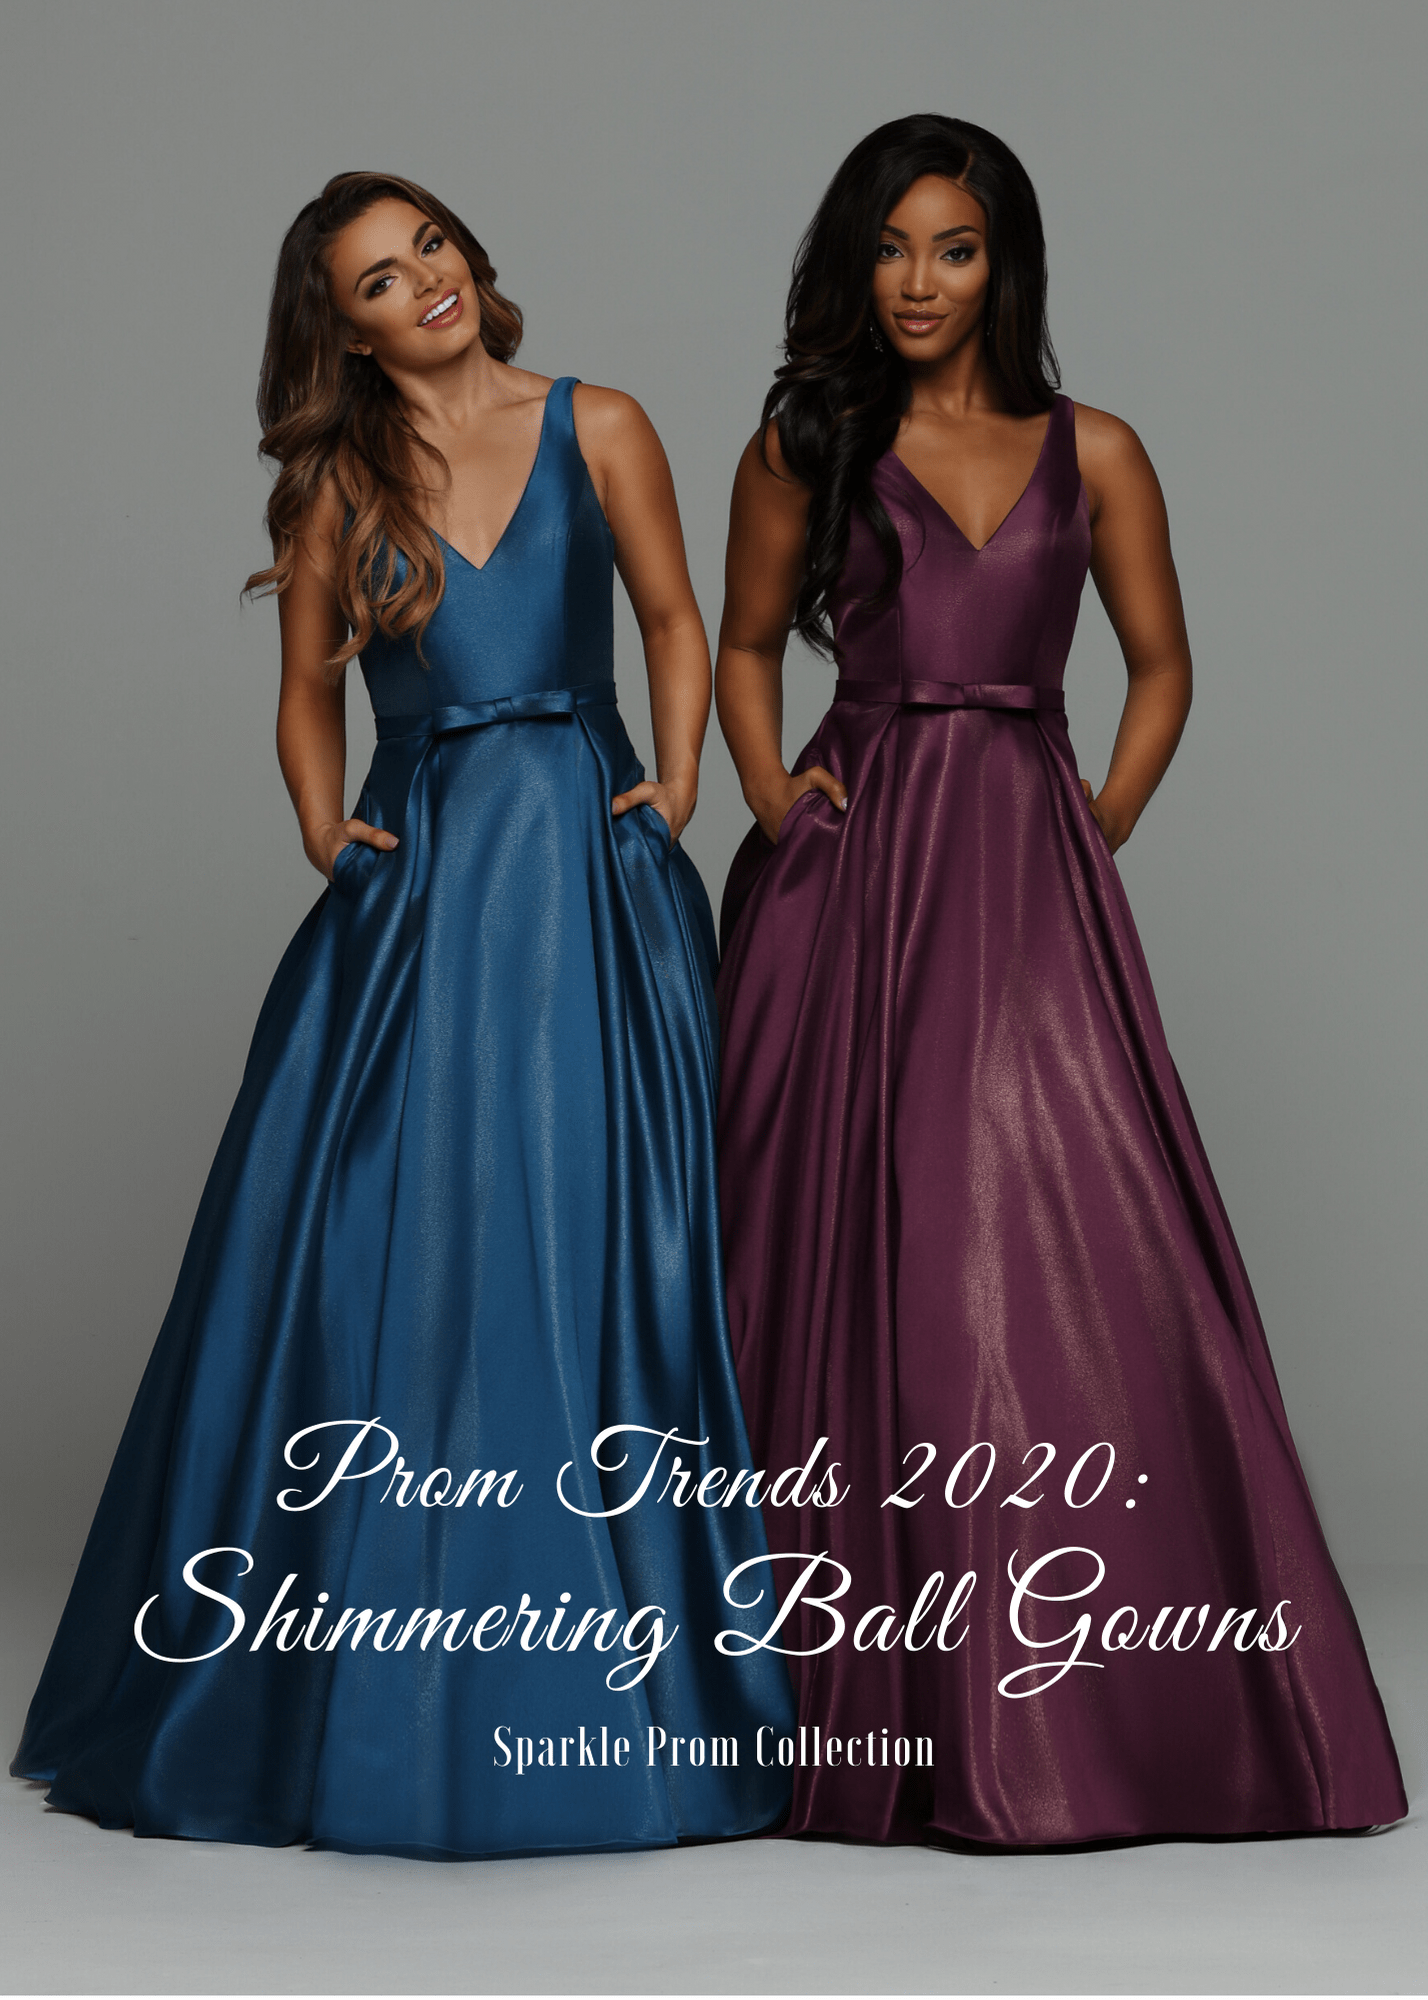 Shimmering Ball Gowns for Prom & Homecoming 2020 – Sparkle Prom